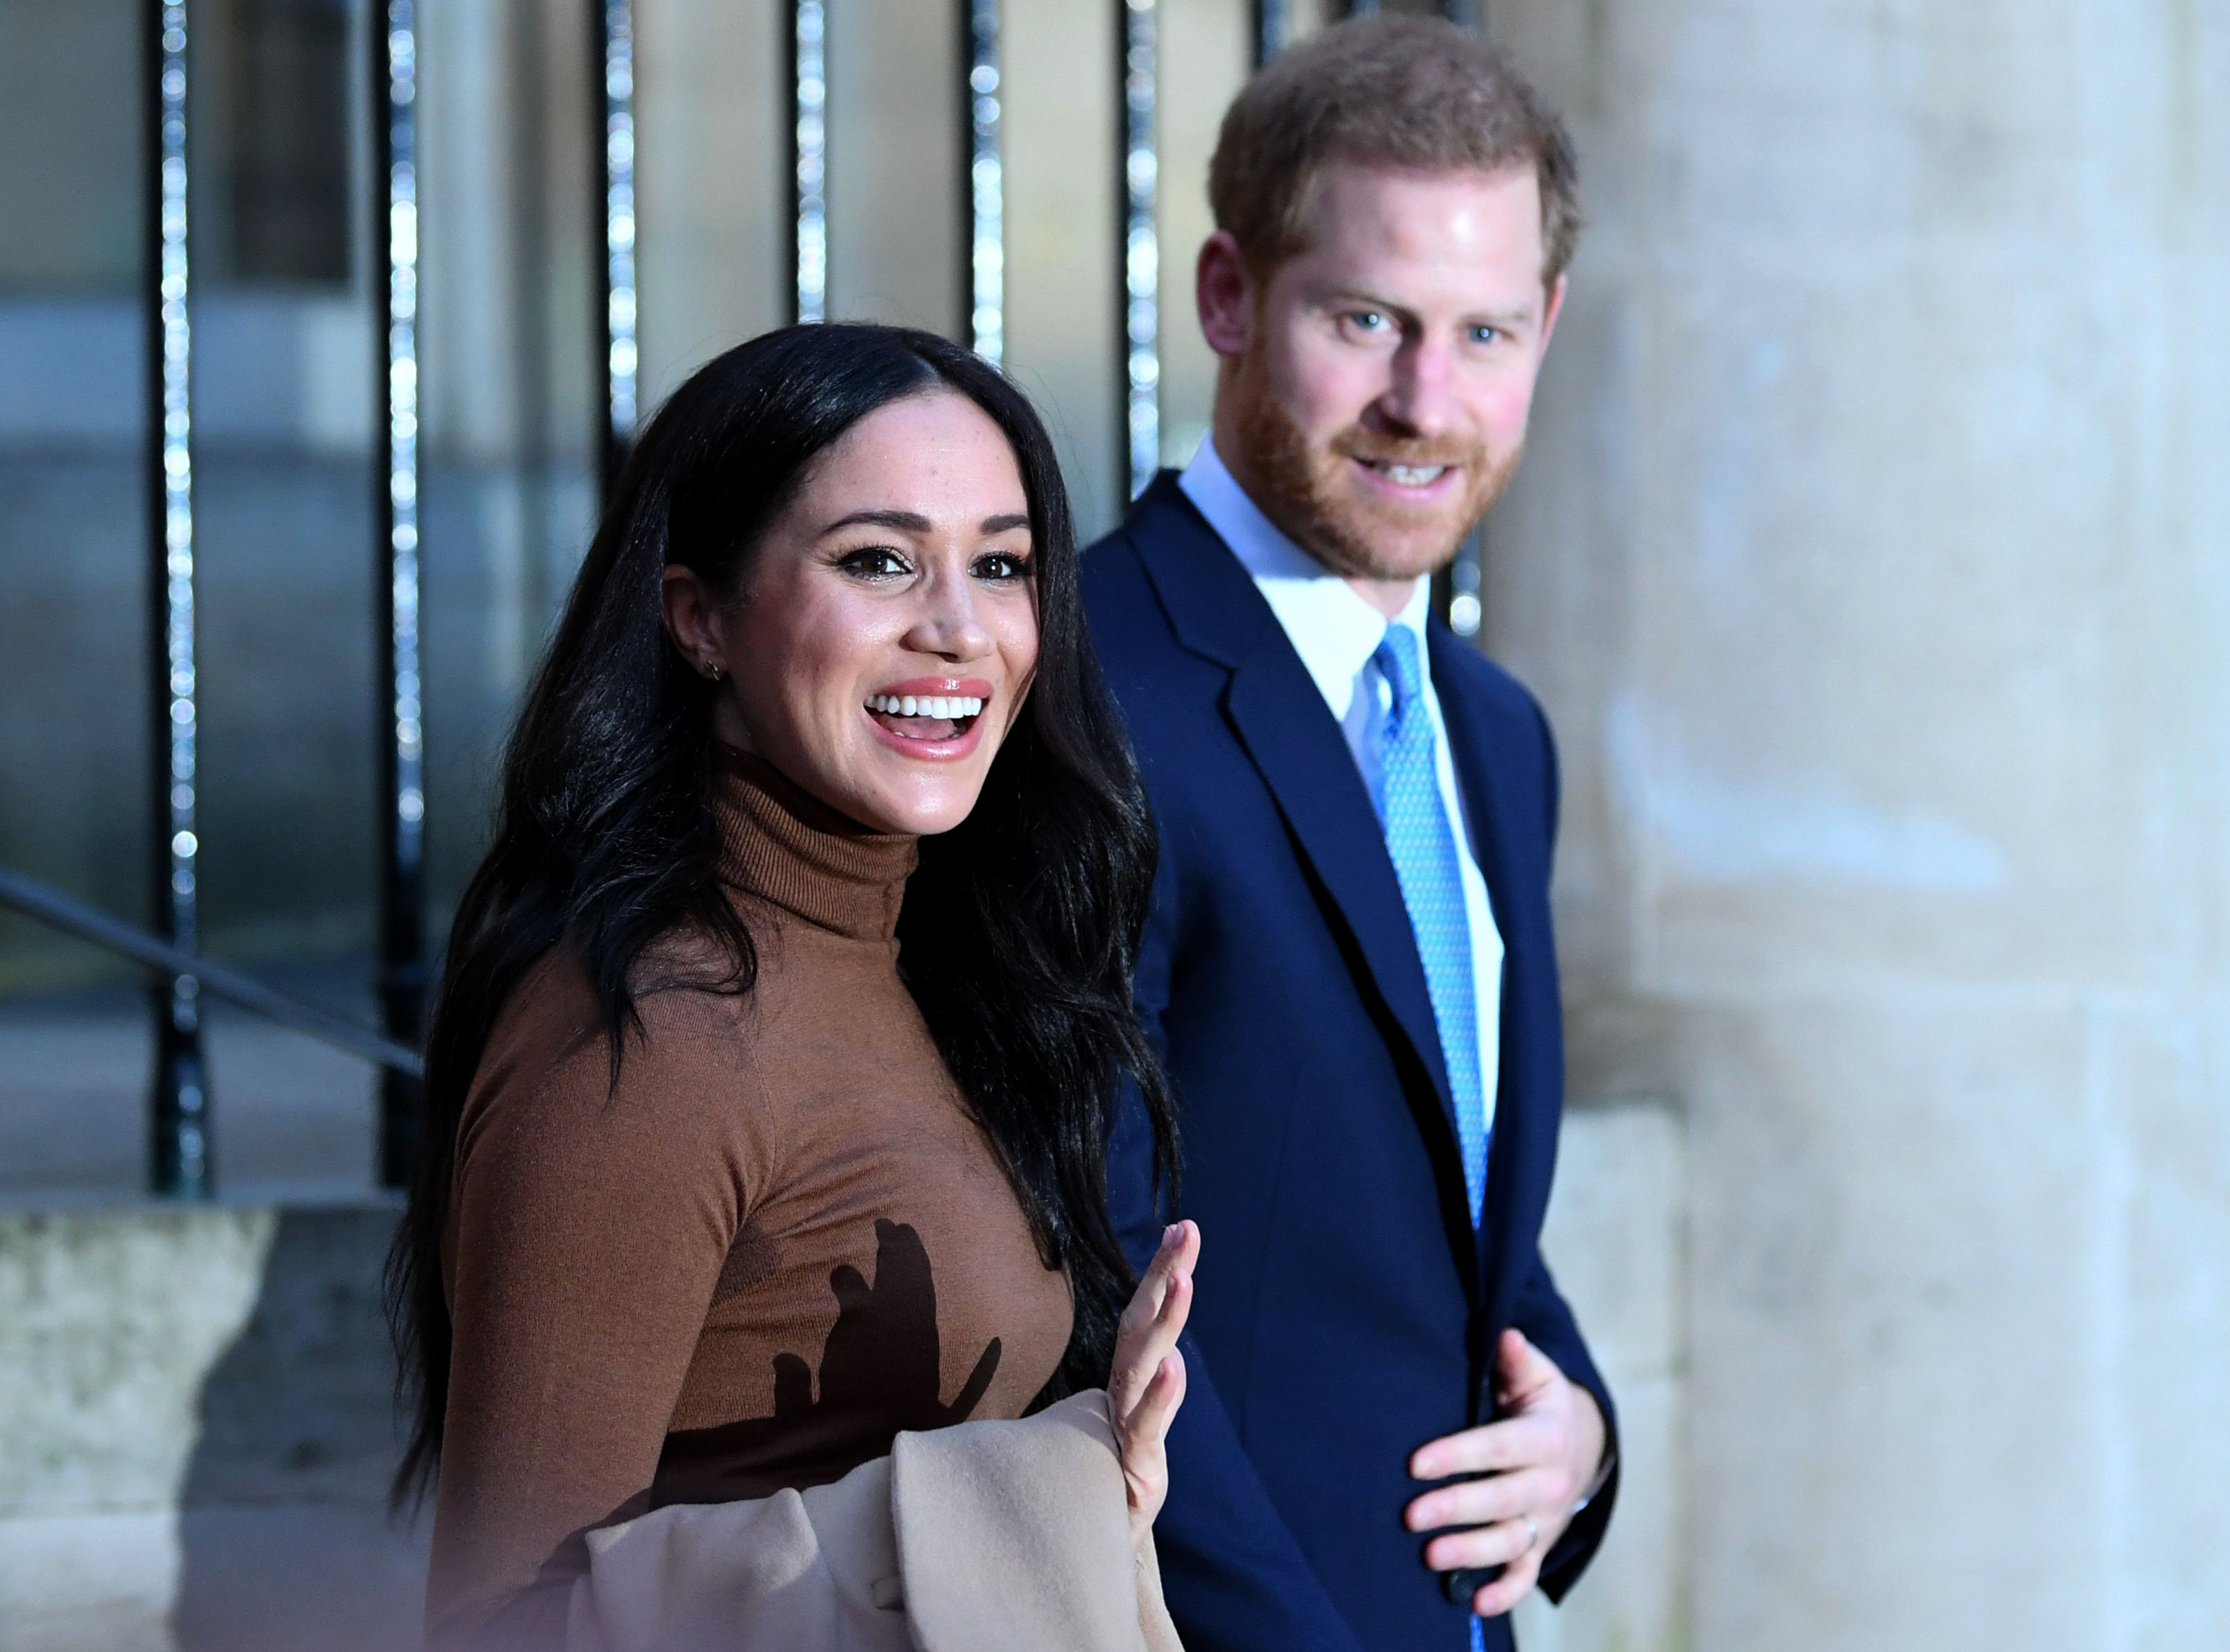 Meghan Markle and Prince Harry visit Canada House on January 7, 2020, in London, England. | Source: Getty Images.